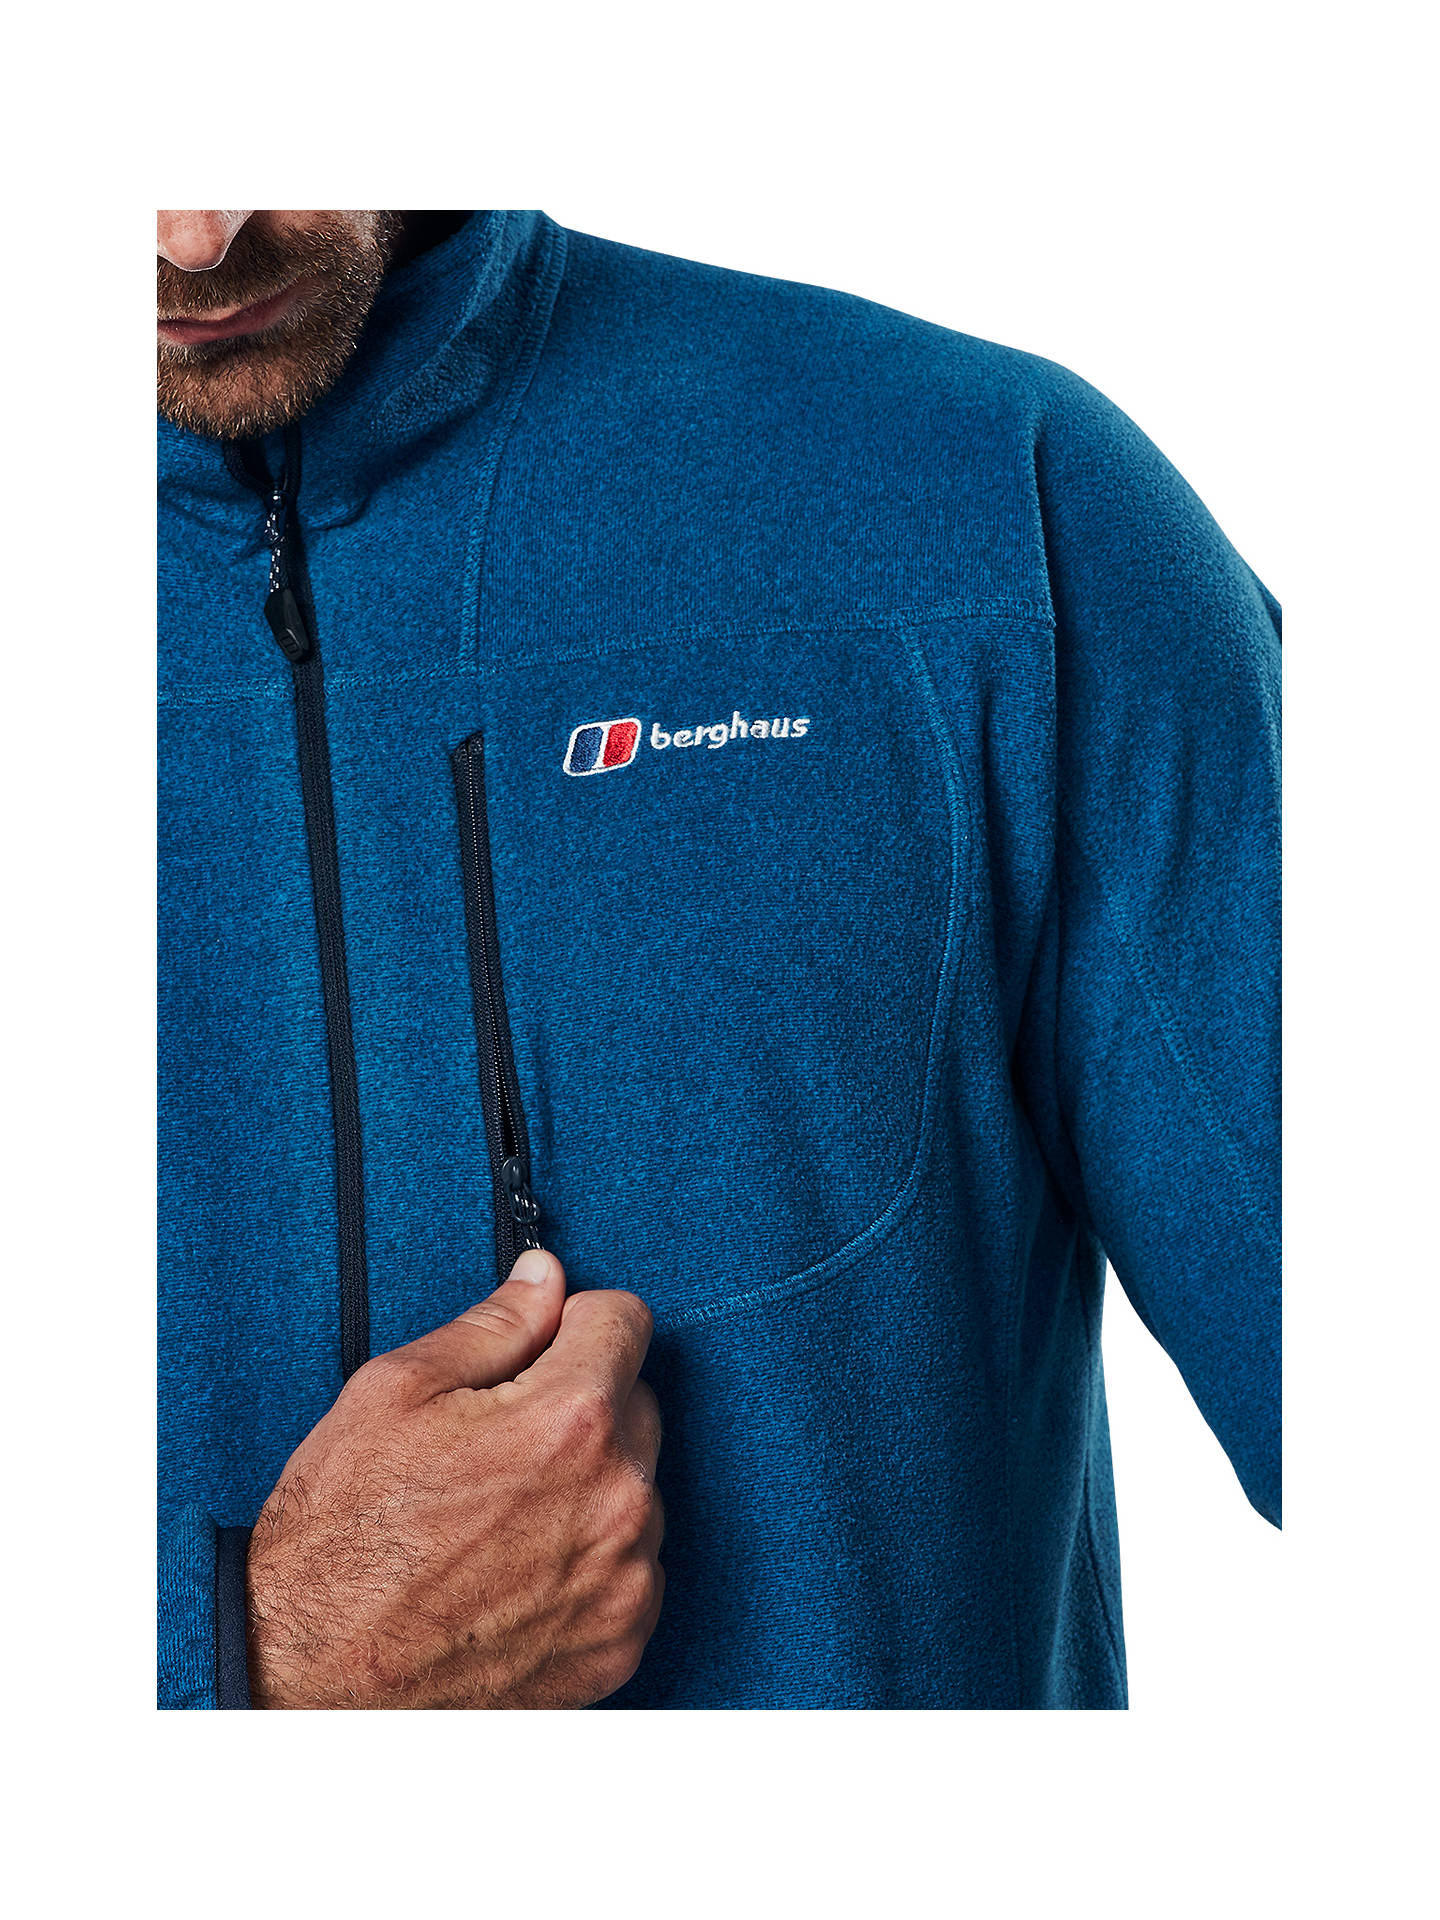 Buy Berghaus Spectrum Full Zip Men's Fleece, Blue, S Online at johnlewis.com